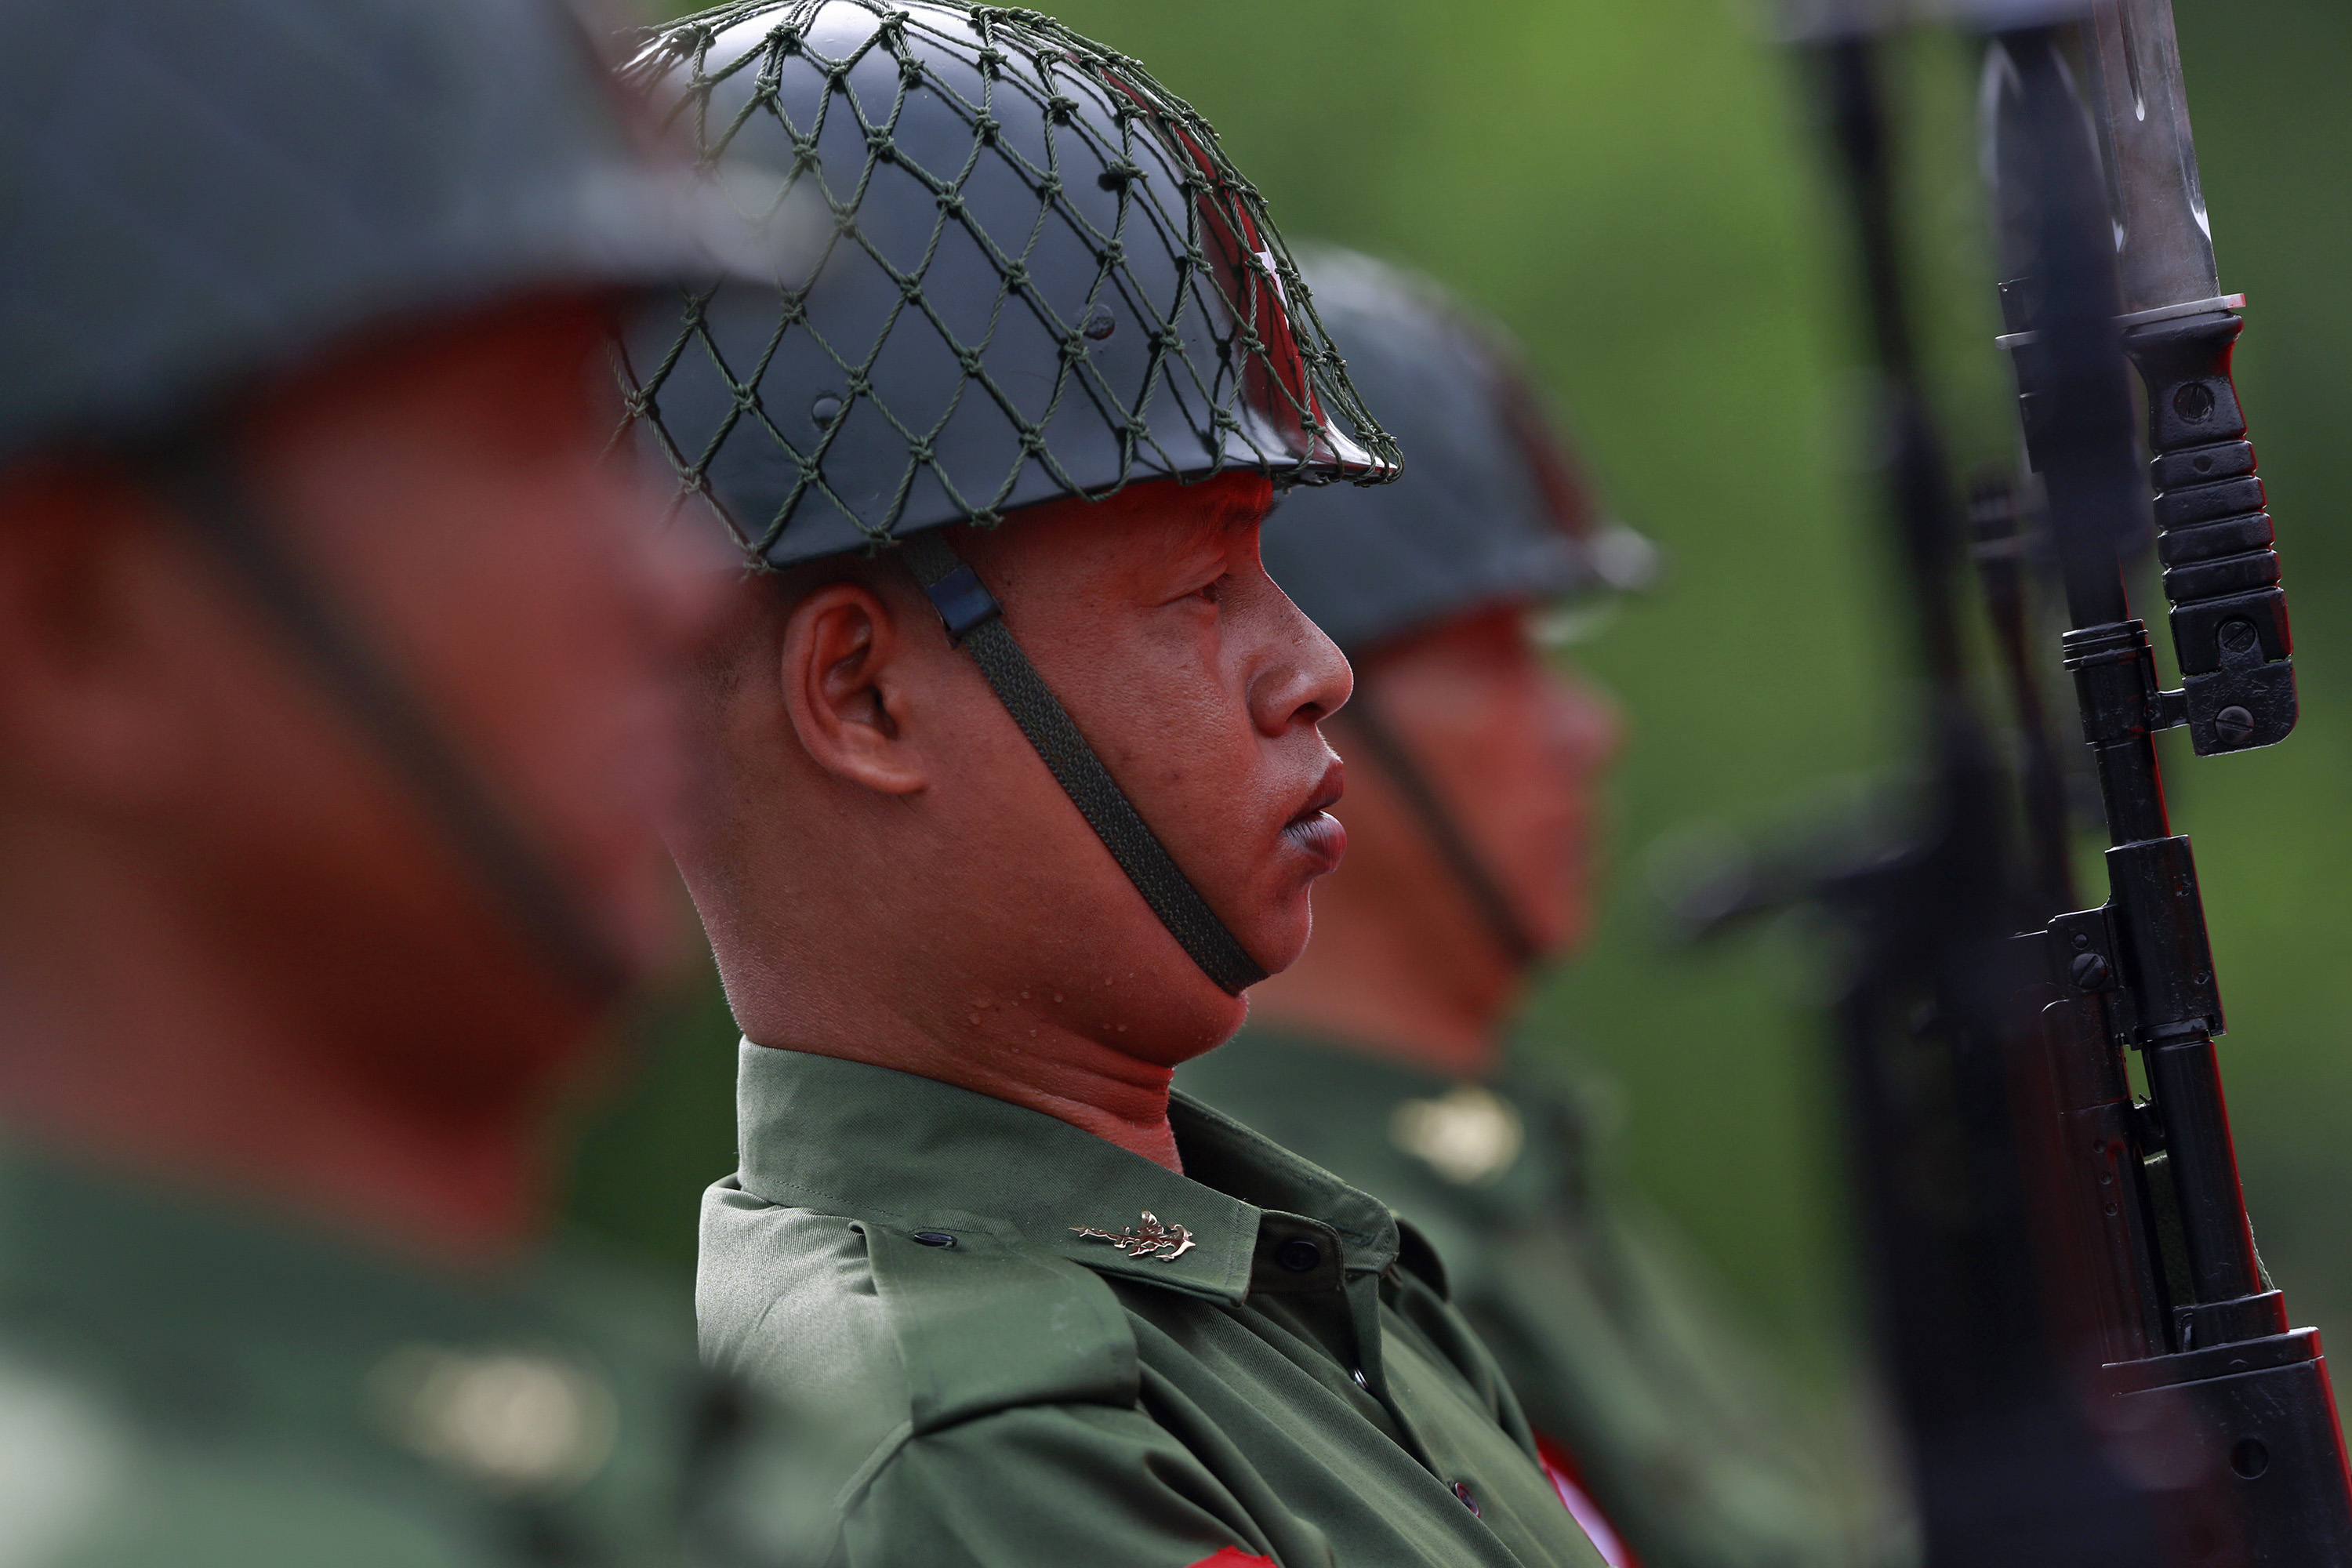 Burmese soldiers salute during an event marking the anniversary of Martyrs' Day at the Martyrs' Mausoleum in Rangoon on July 19, 2014